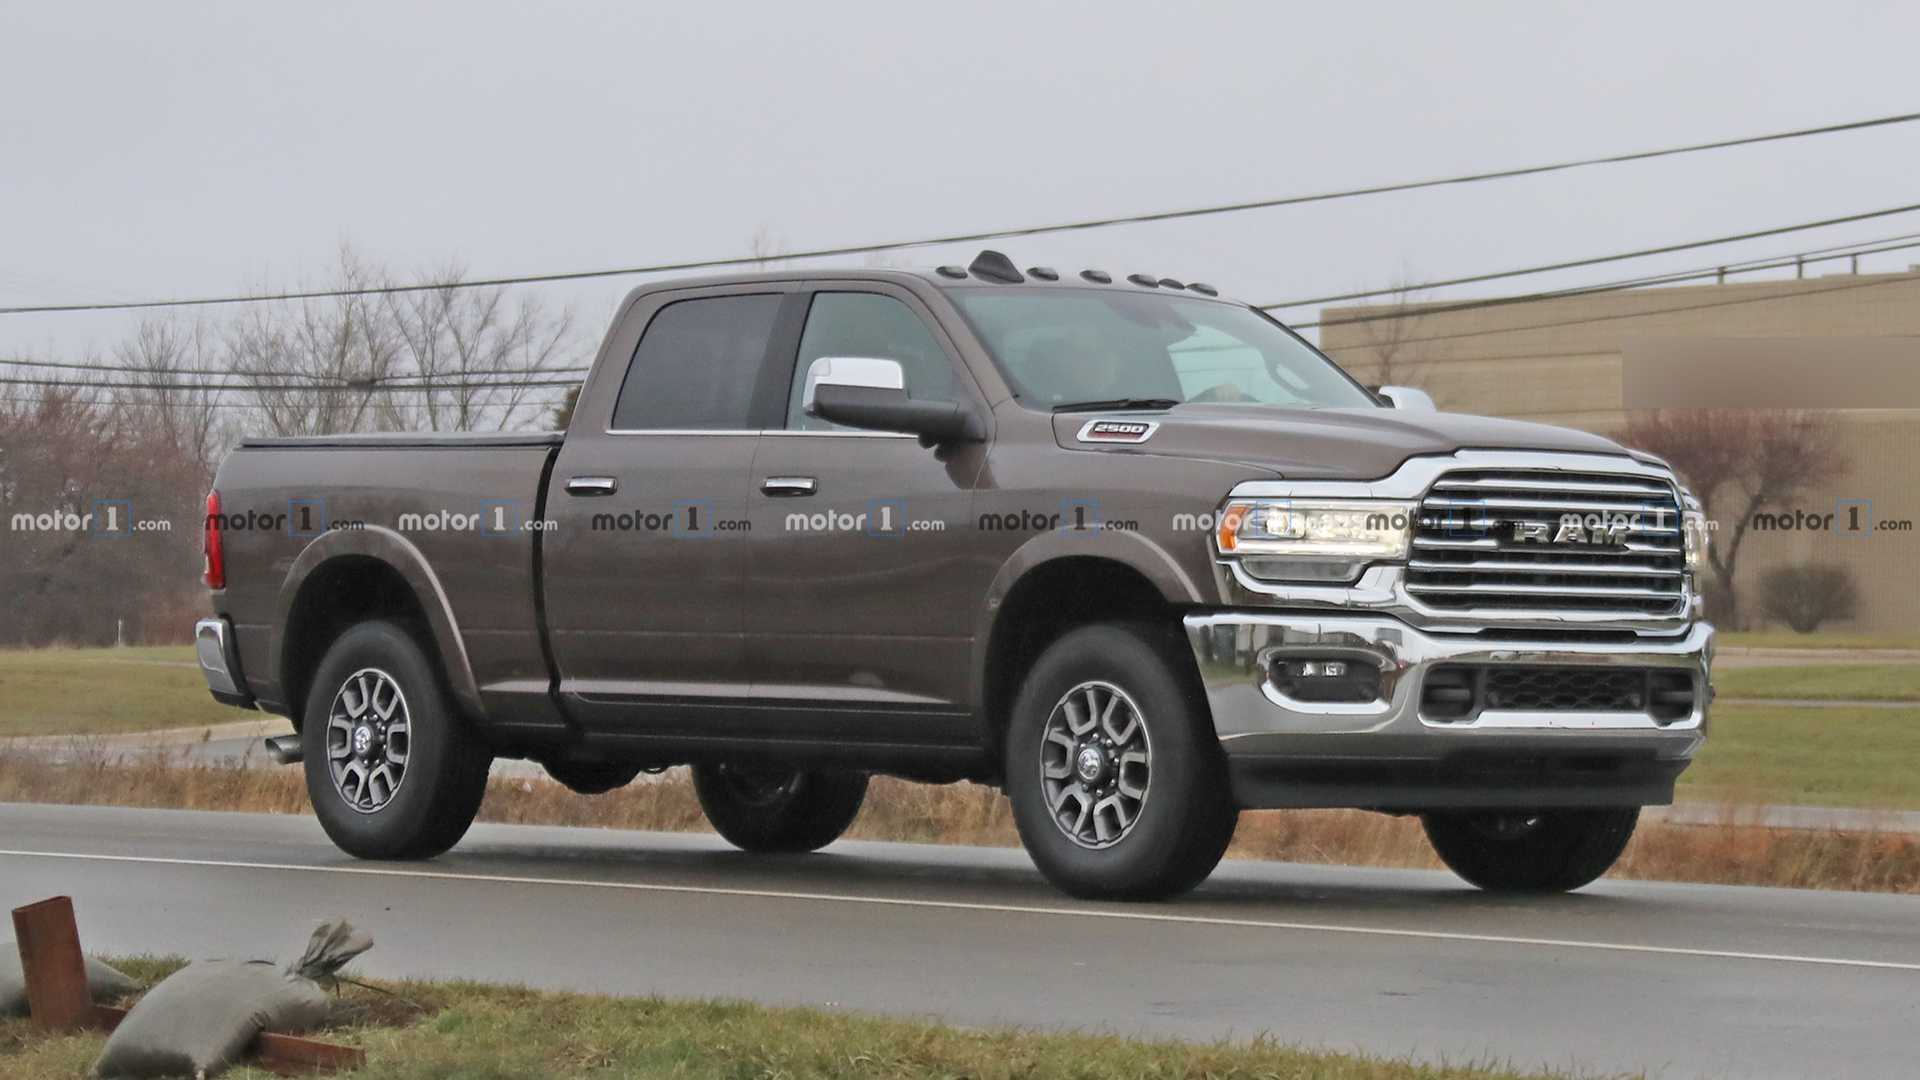 72 New 2020 Ram 2500 Diesel Price